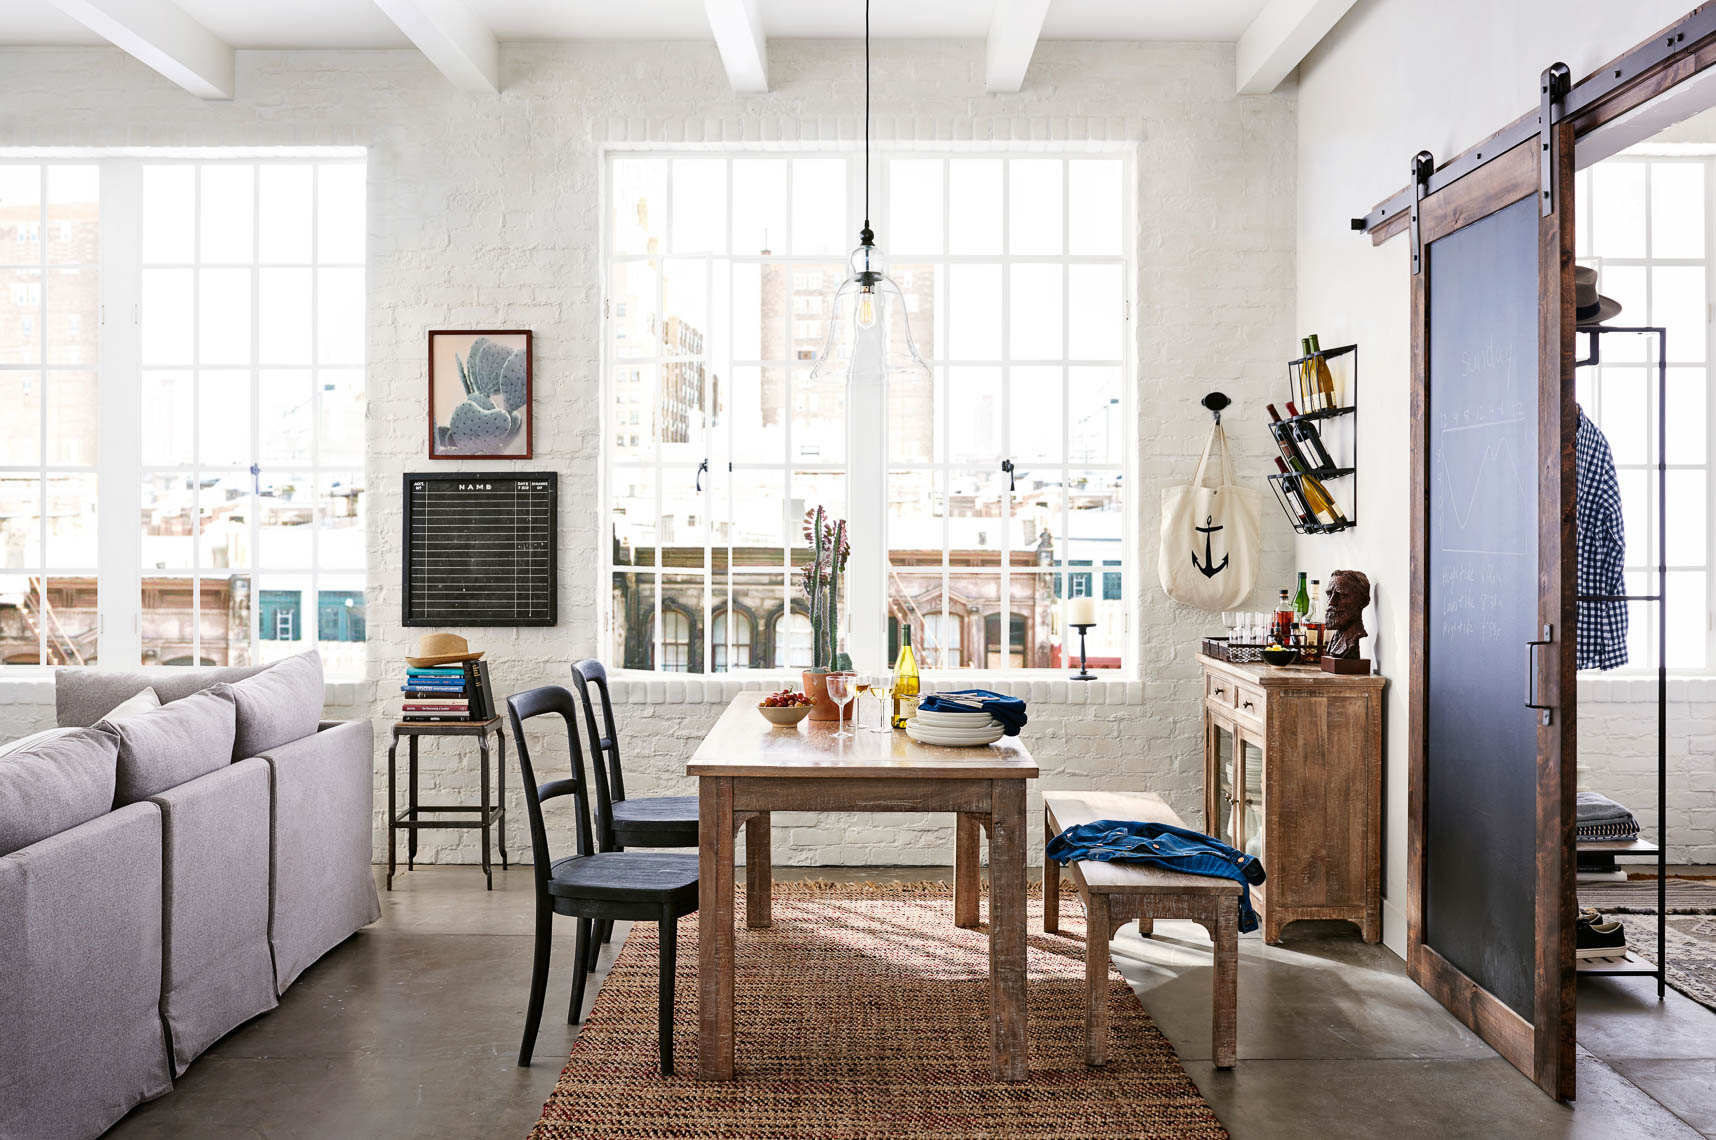 alec-hemer-photography-PB-loft-dining-room_4